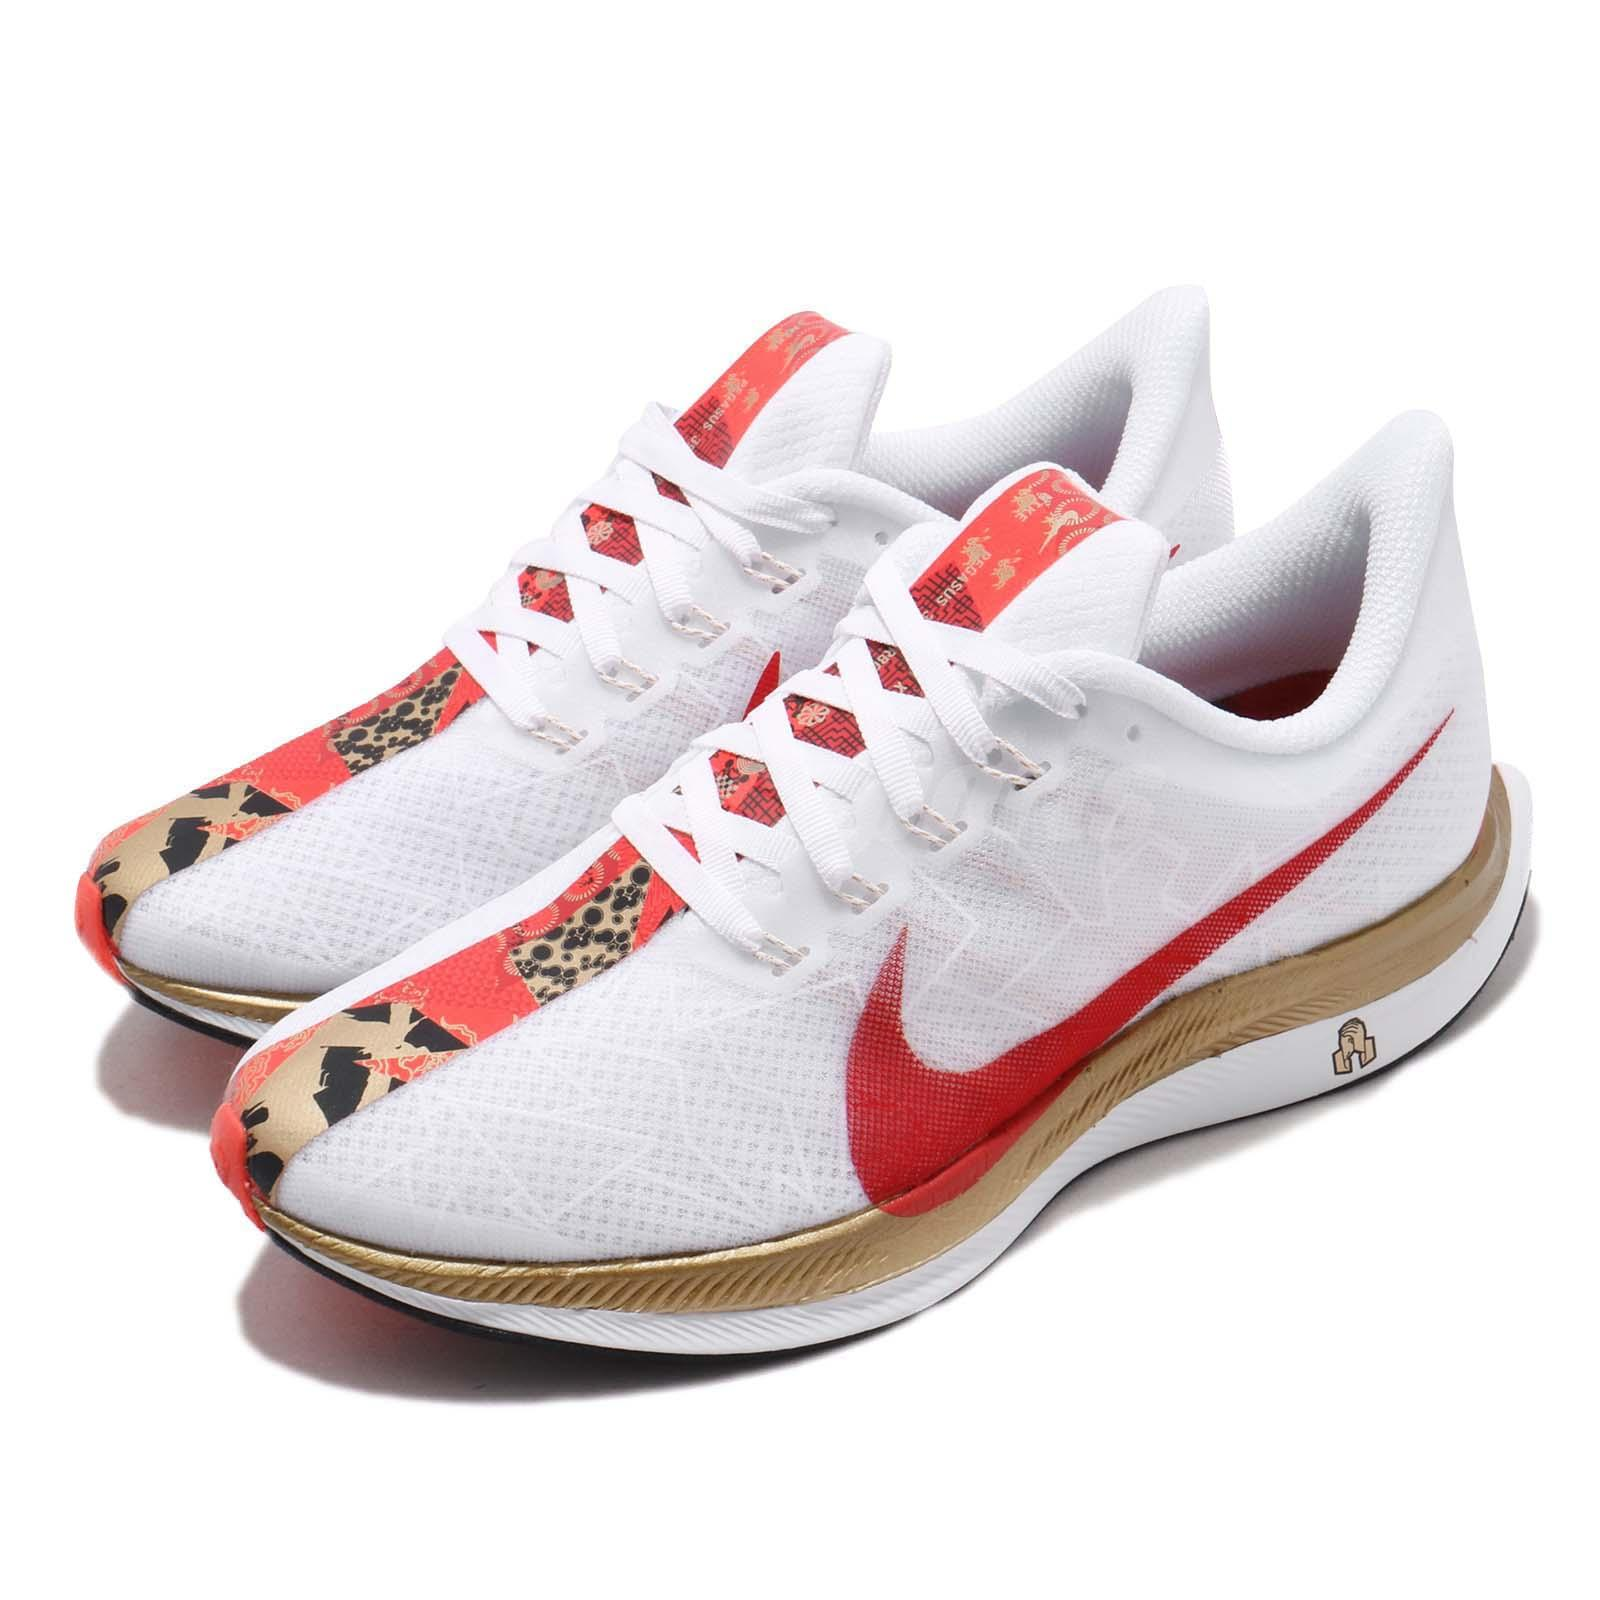 fb592a49c Details about Nike Wmns Zoom Pegasus 35 Turbo CNY Chinese New Year Women  Shoes BV6657-176